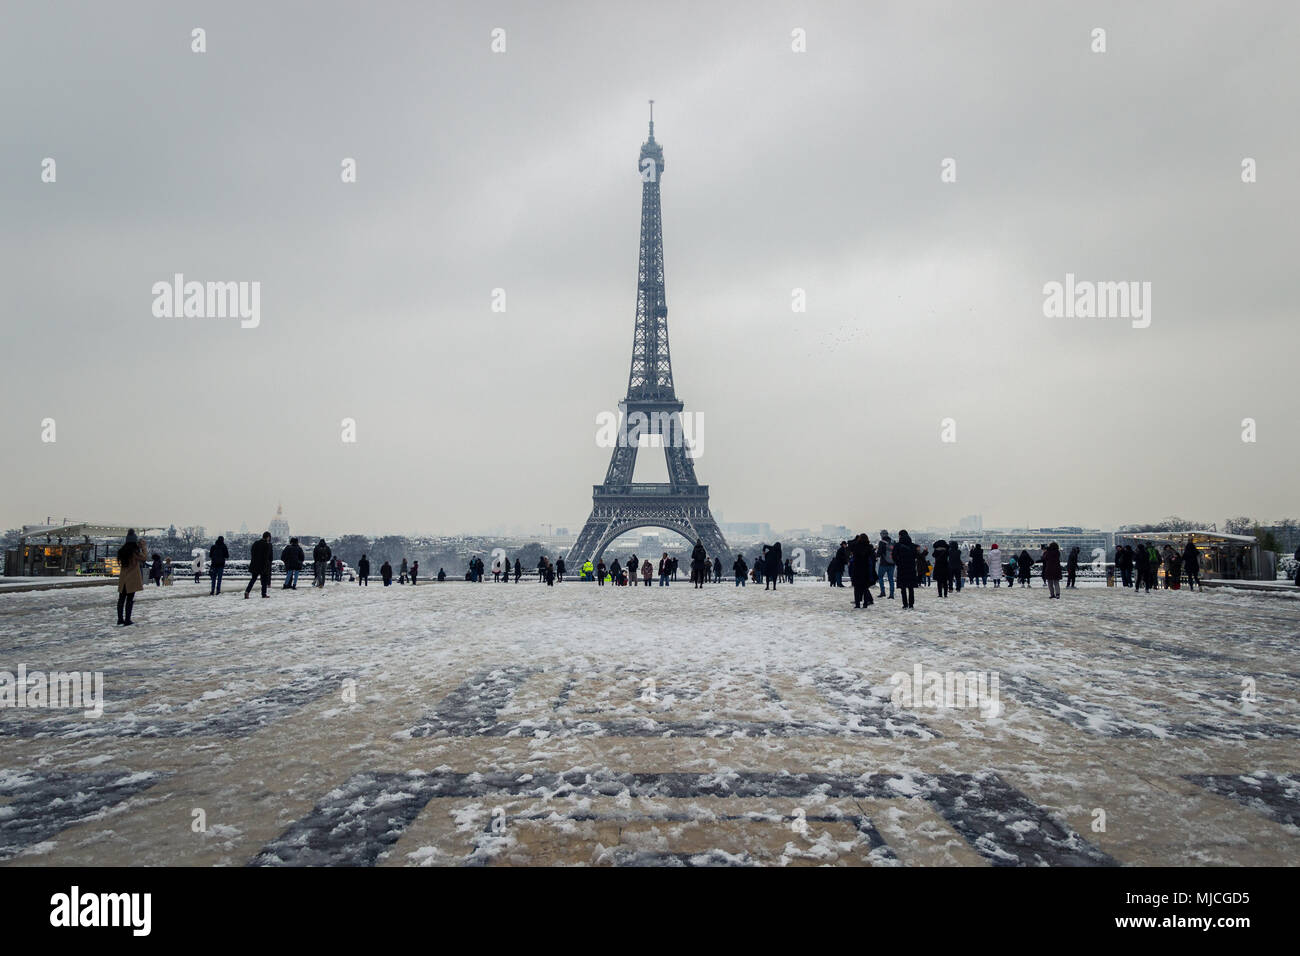 Paris, France - 8 February 2018 : people enjoying the Eiffel Tower under the snow, from the Trocadero - Stock Image